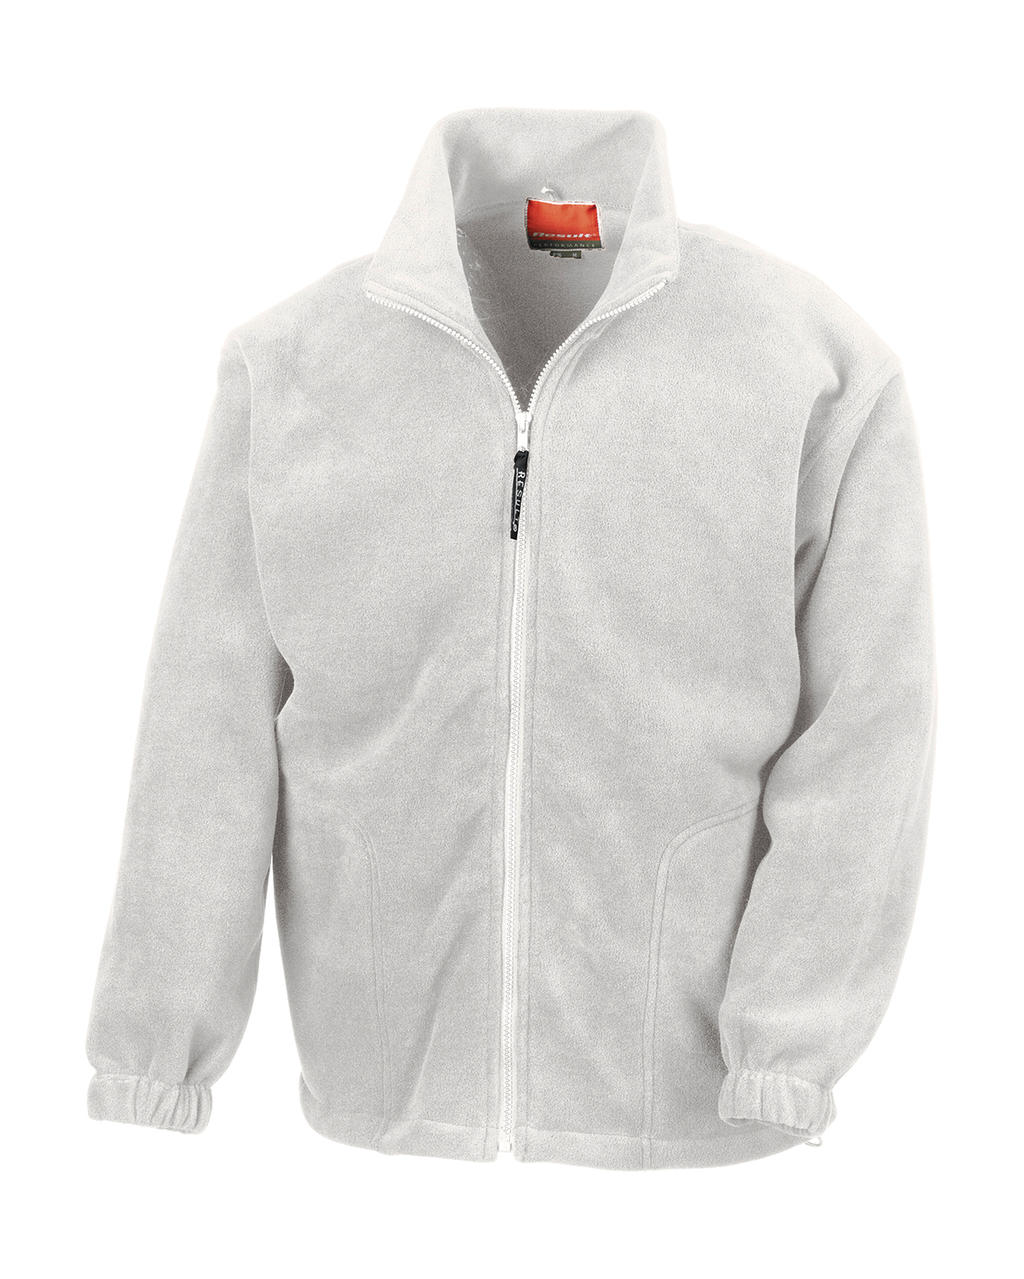 Full Zip Active Fleece Jacket